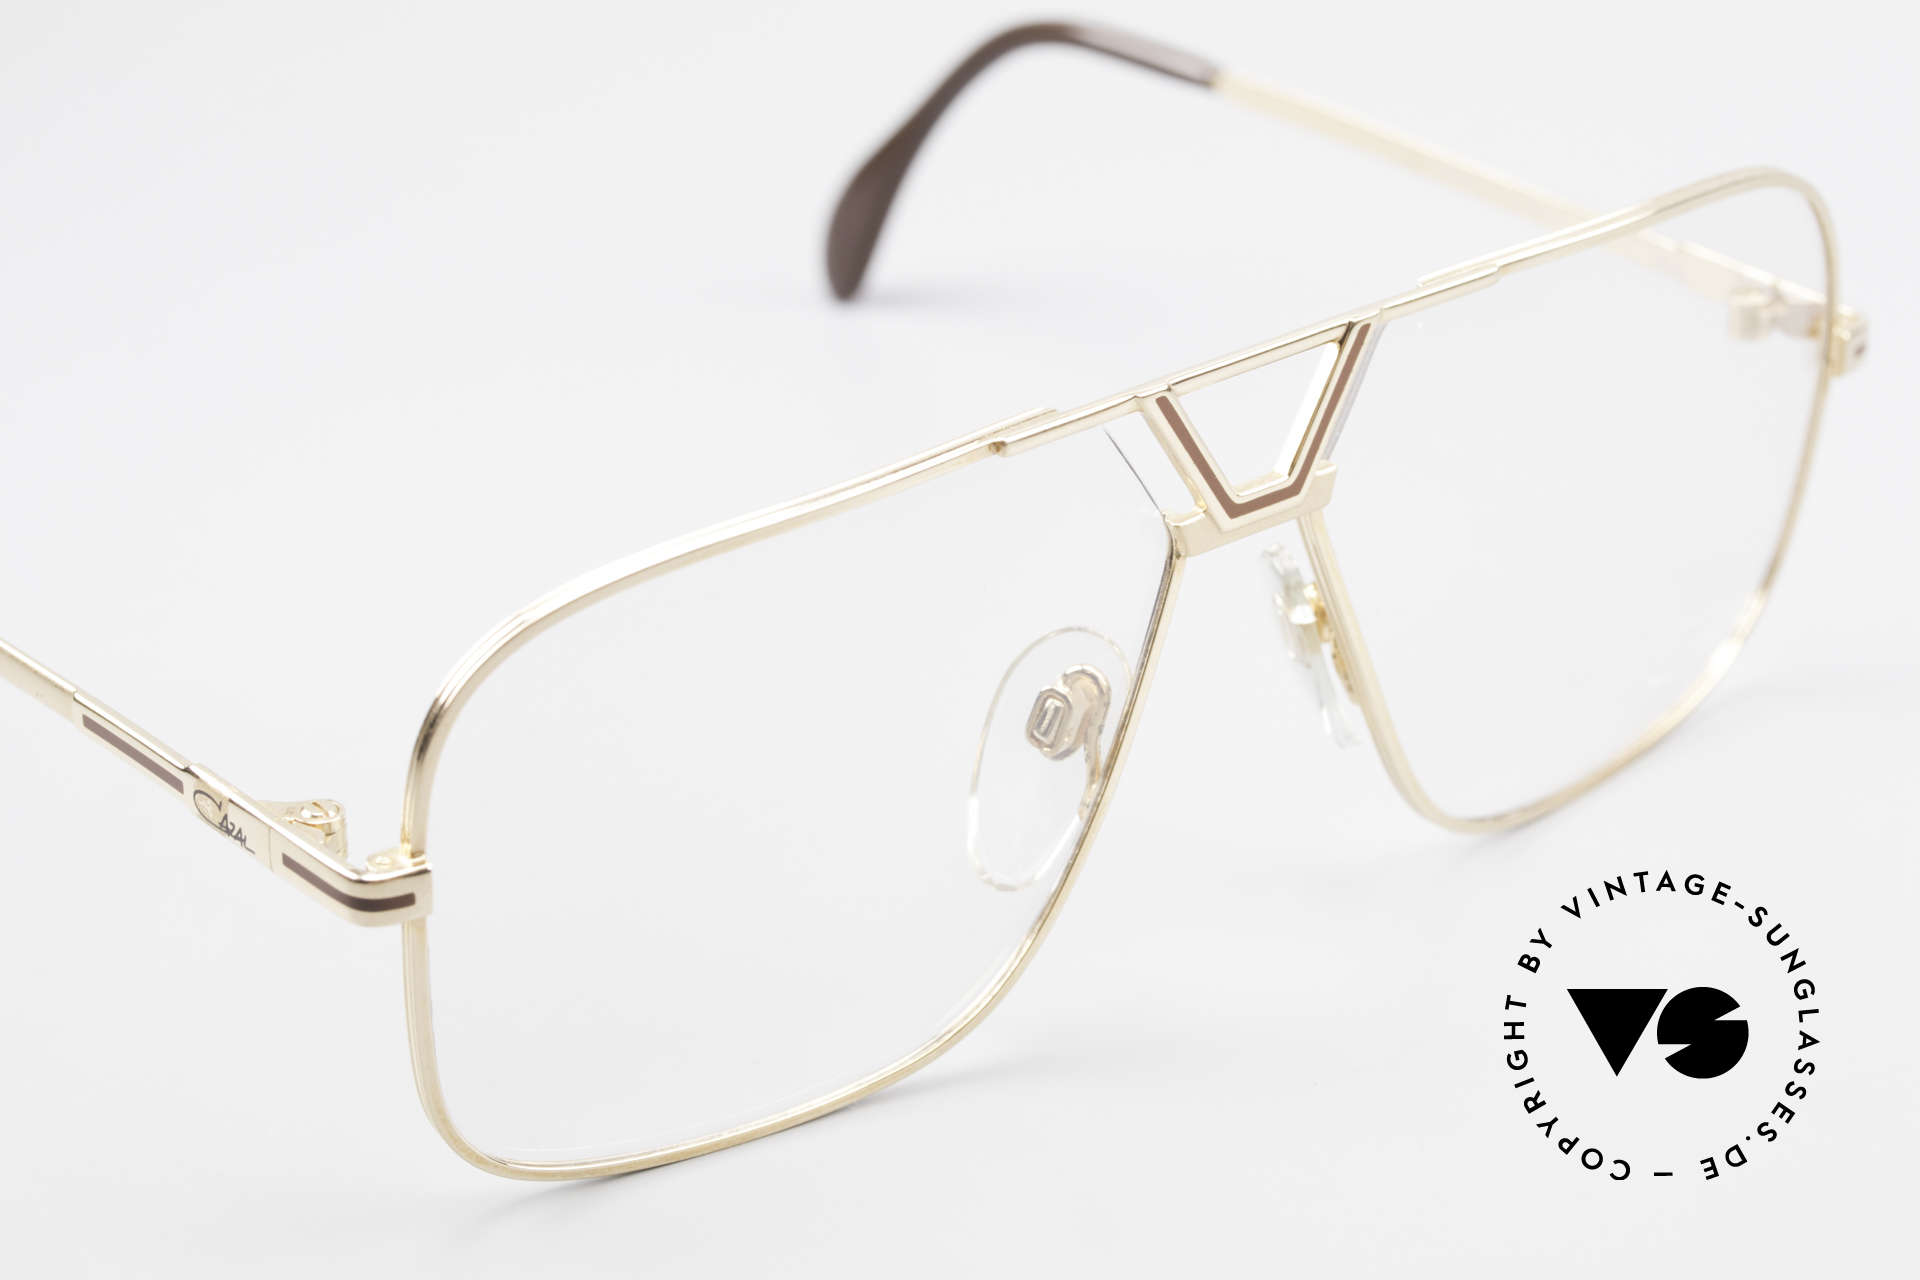 Cazal 725 Rare Vintage 1980's Eyeglasses, precious designer-frame for the elegant gents, Made for Men